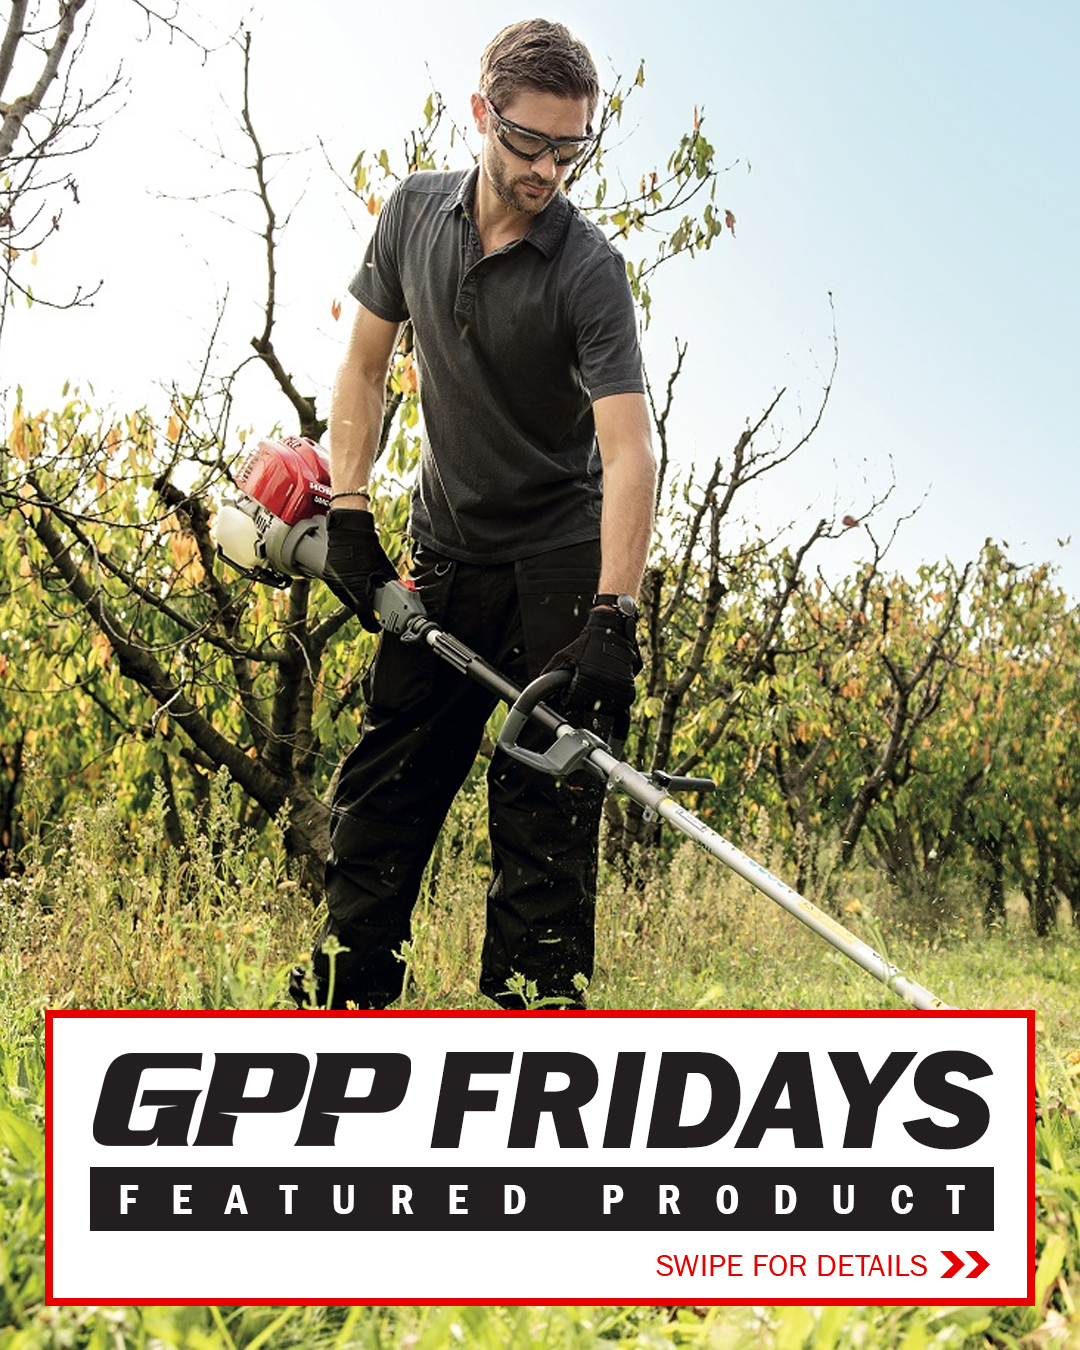 GPP FRIDAYS FEAT. PRODUCT: The All-in-One that everyone needs...